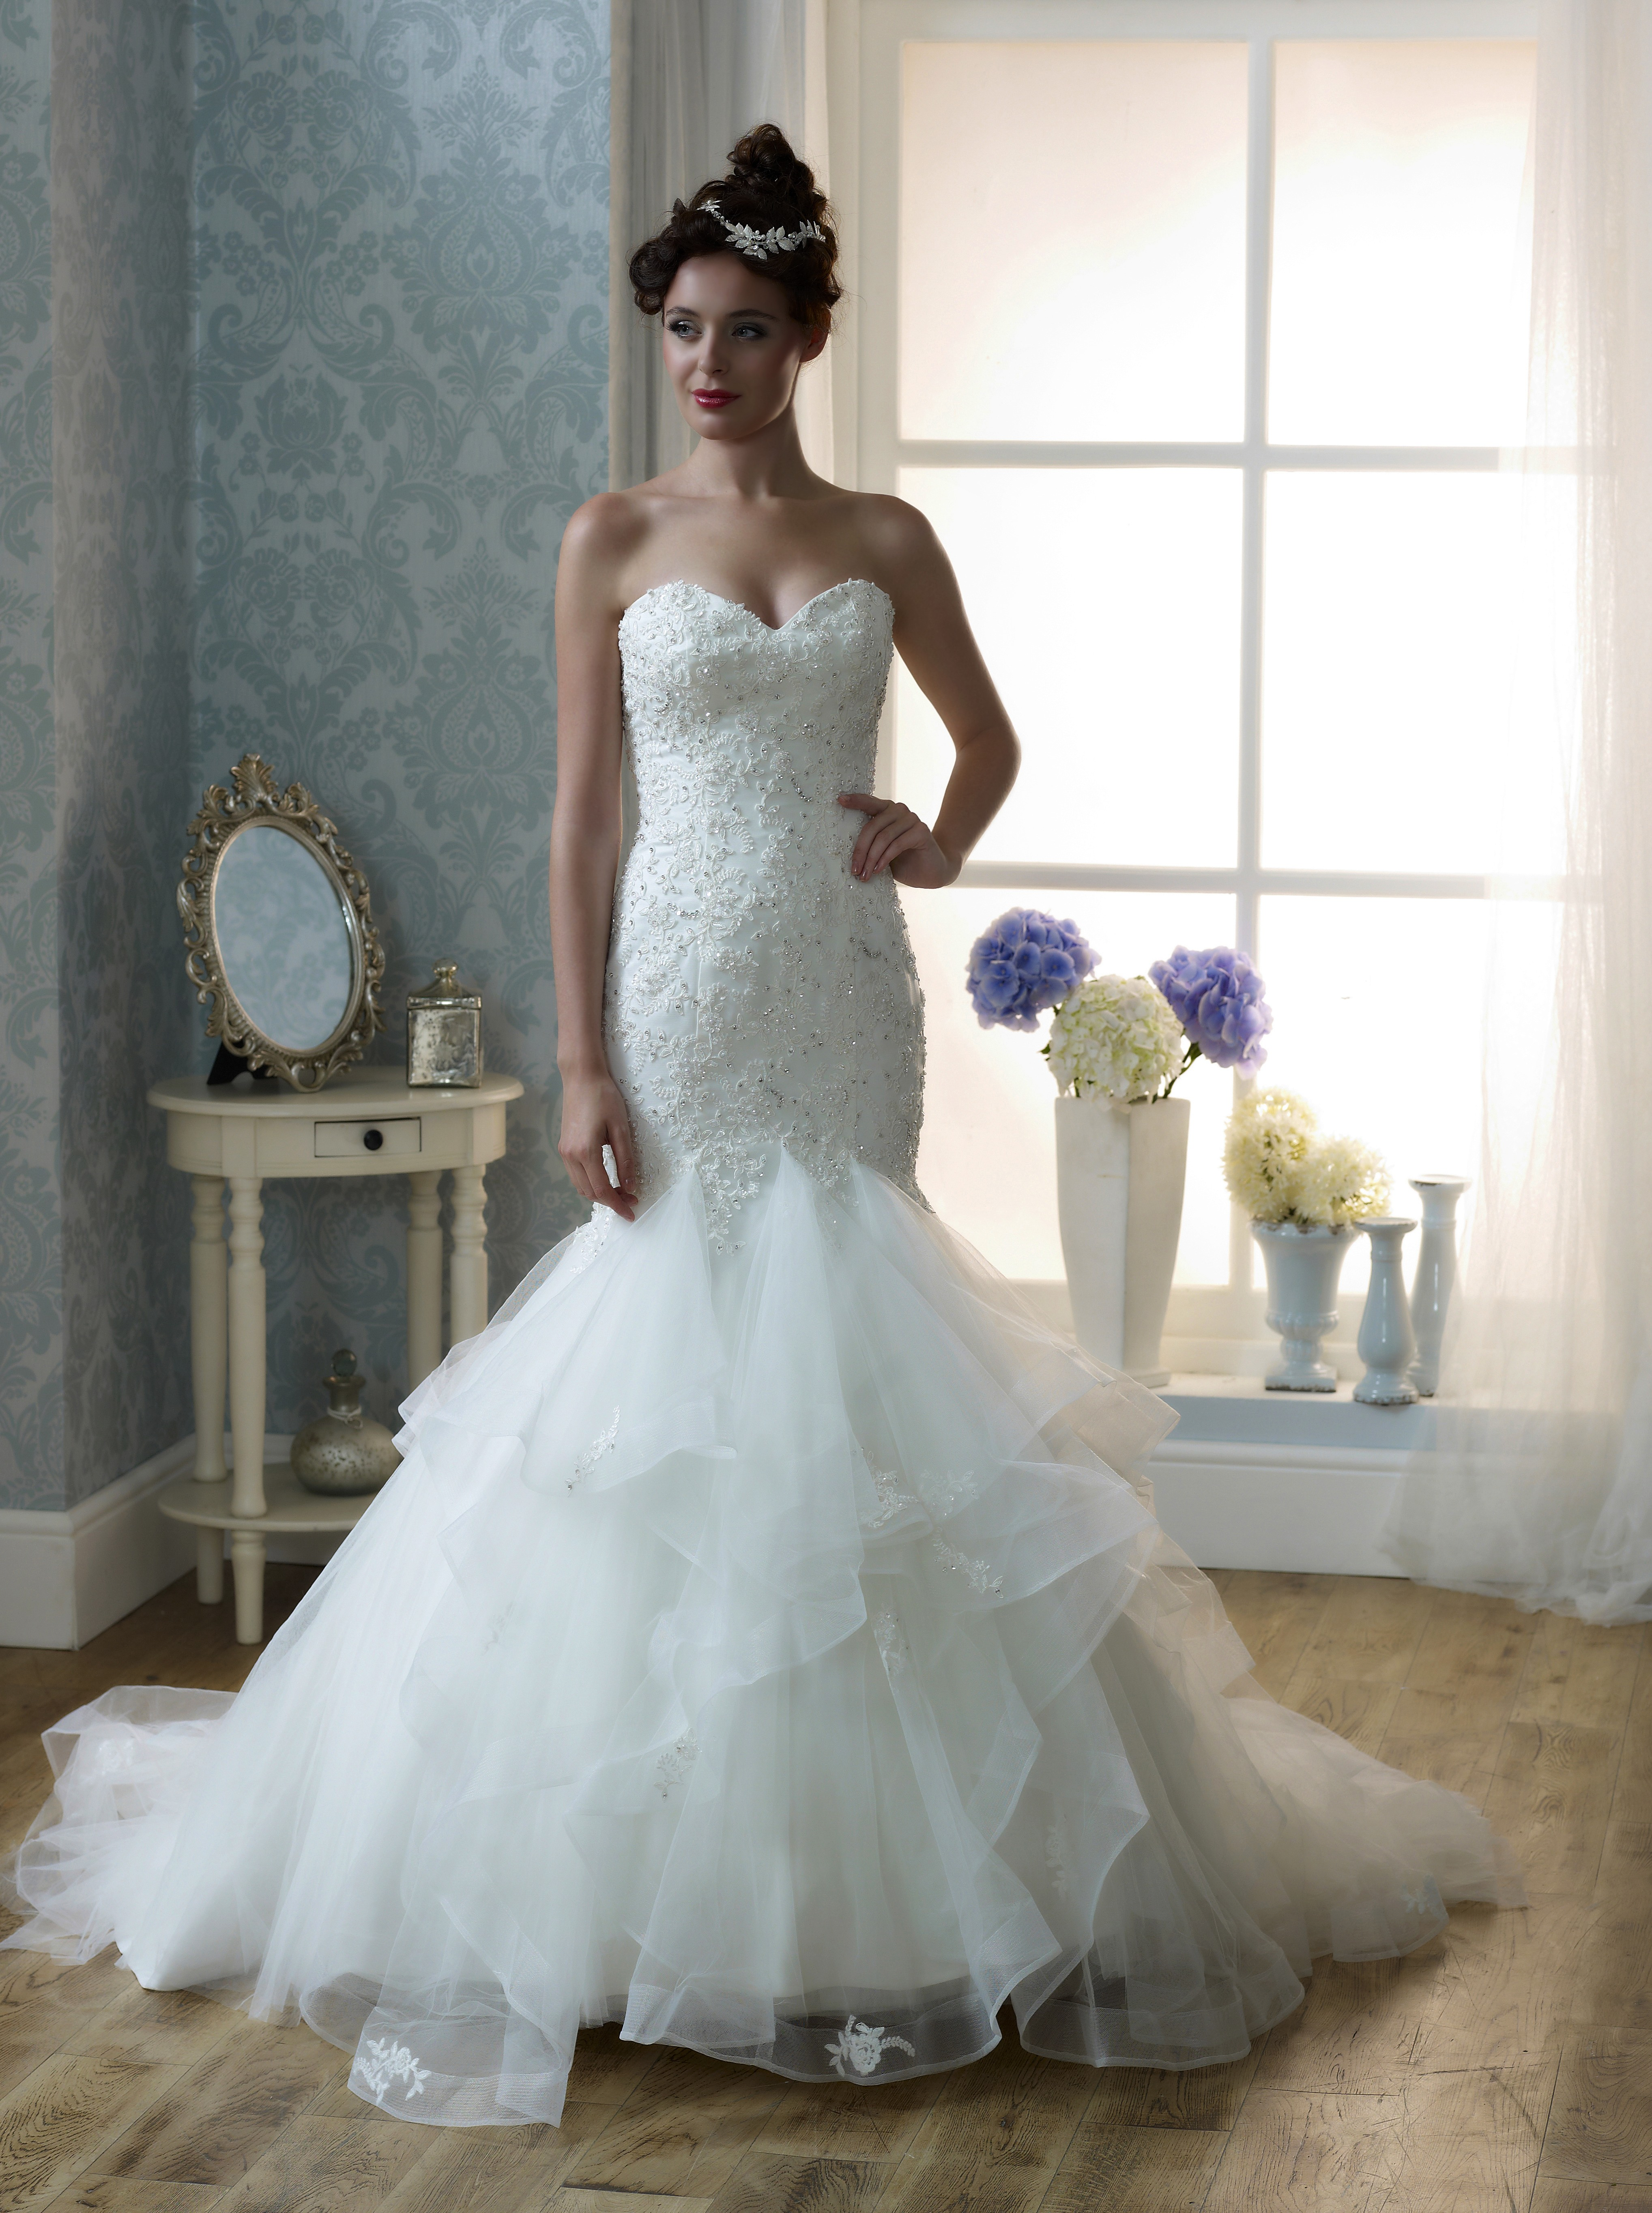 Fantastic Phoenix Bridal Gowns Image - Wedding and flowers ...